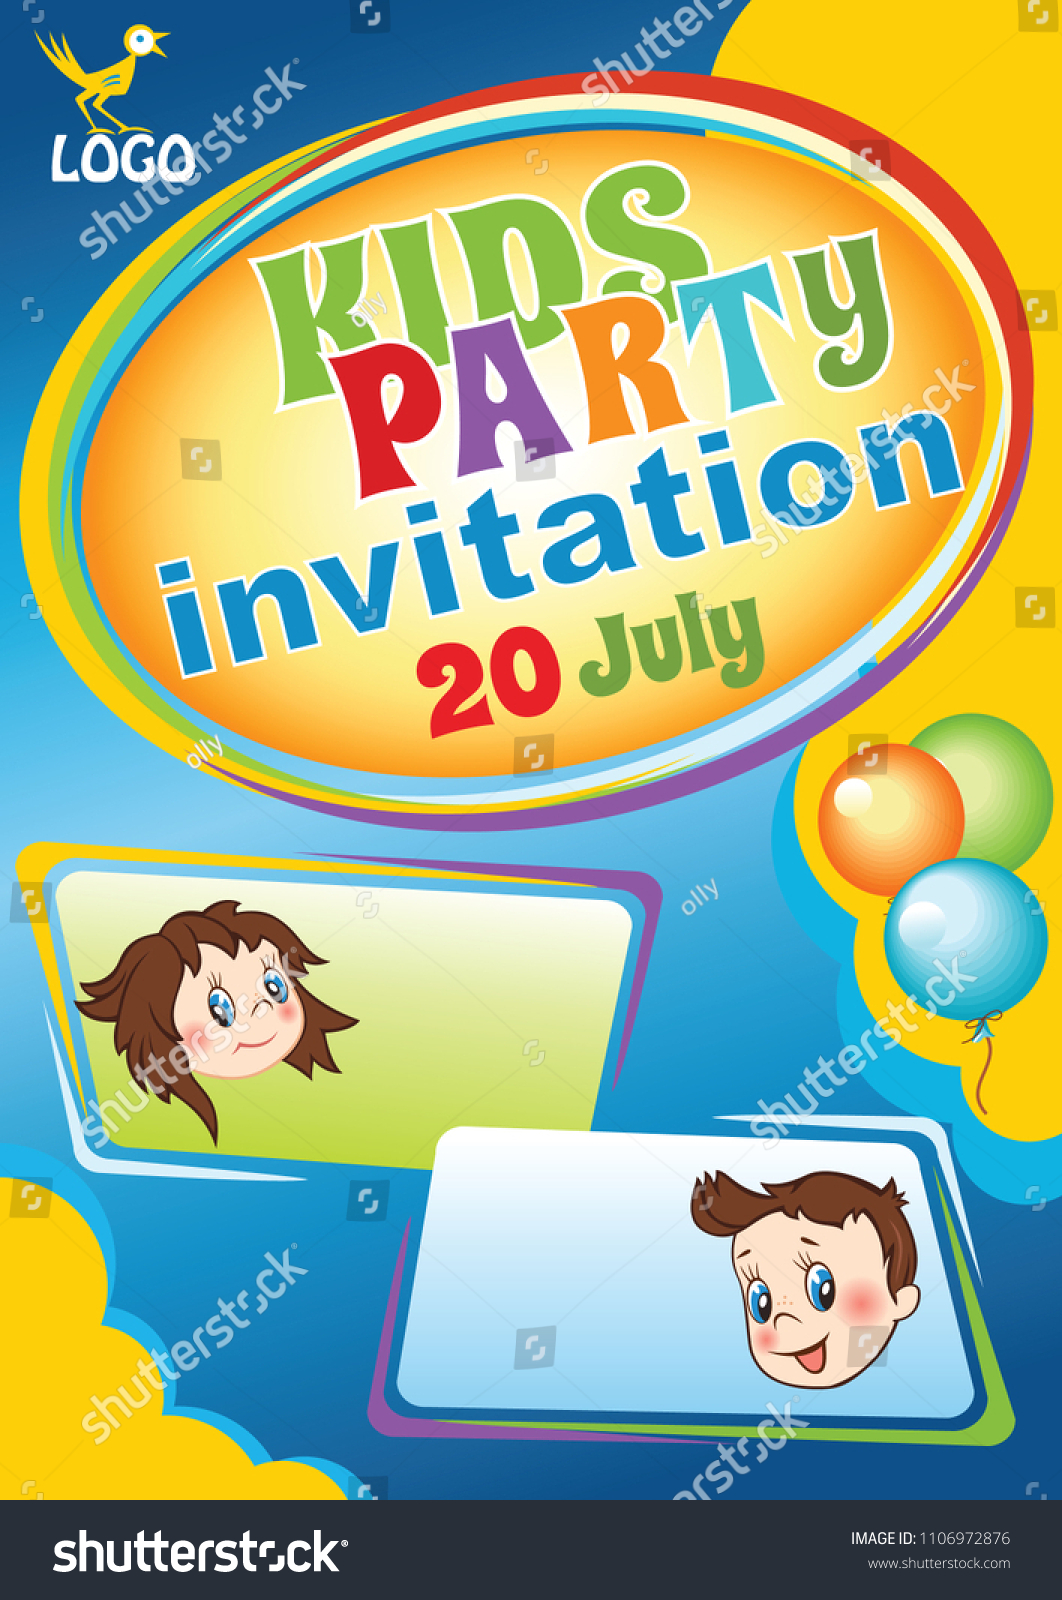 Kids Party Invitation Template Baby Birthday Stock Vector HD ...